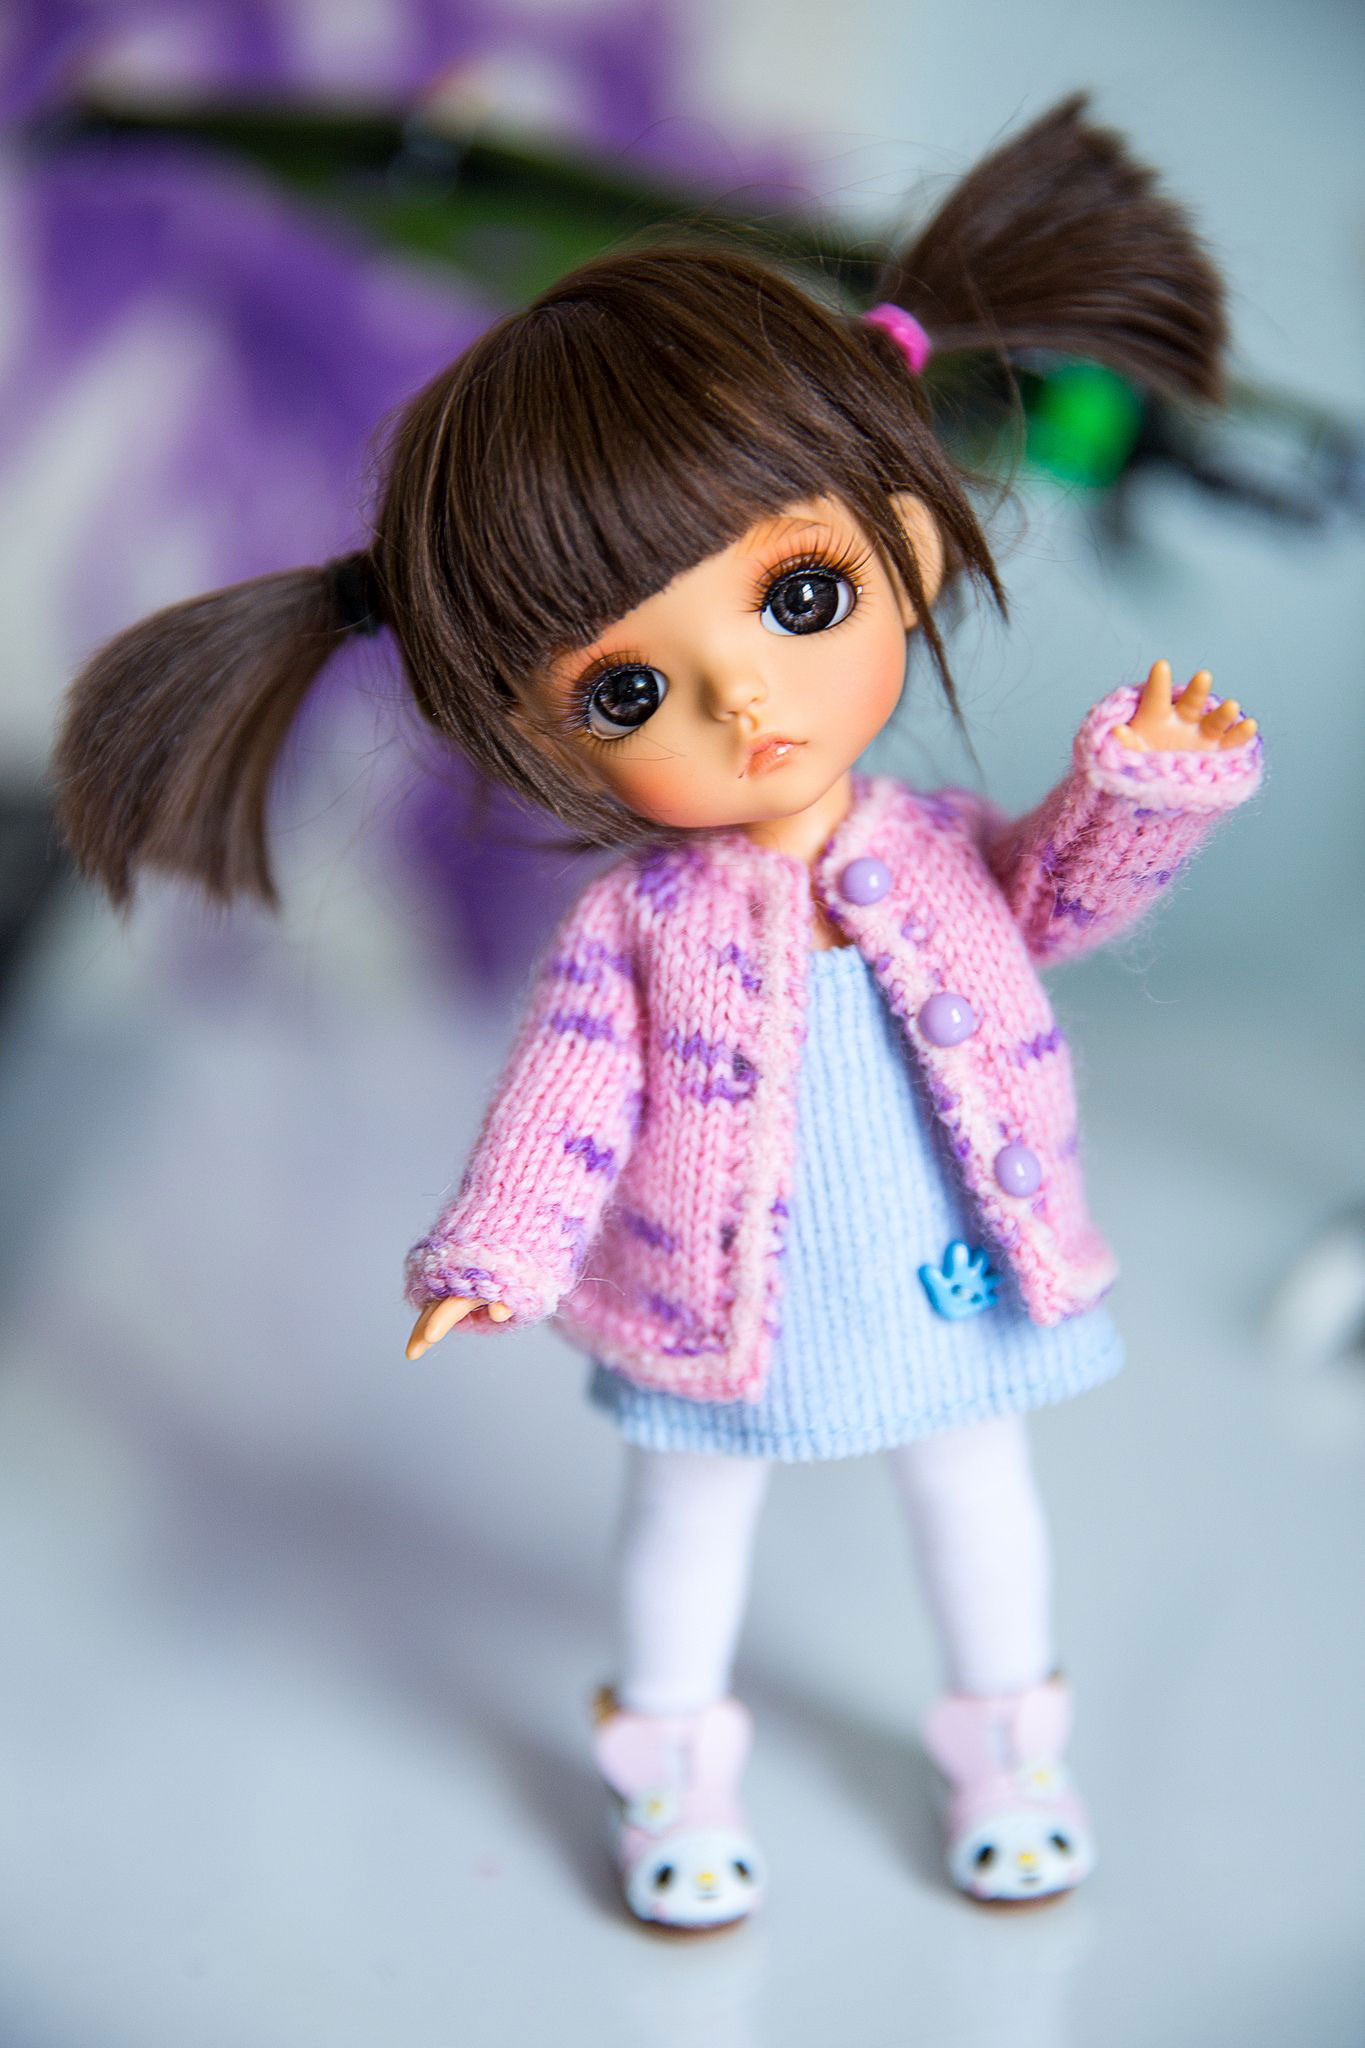 2021 free download Nice Doll Dp Images hd